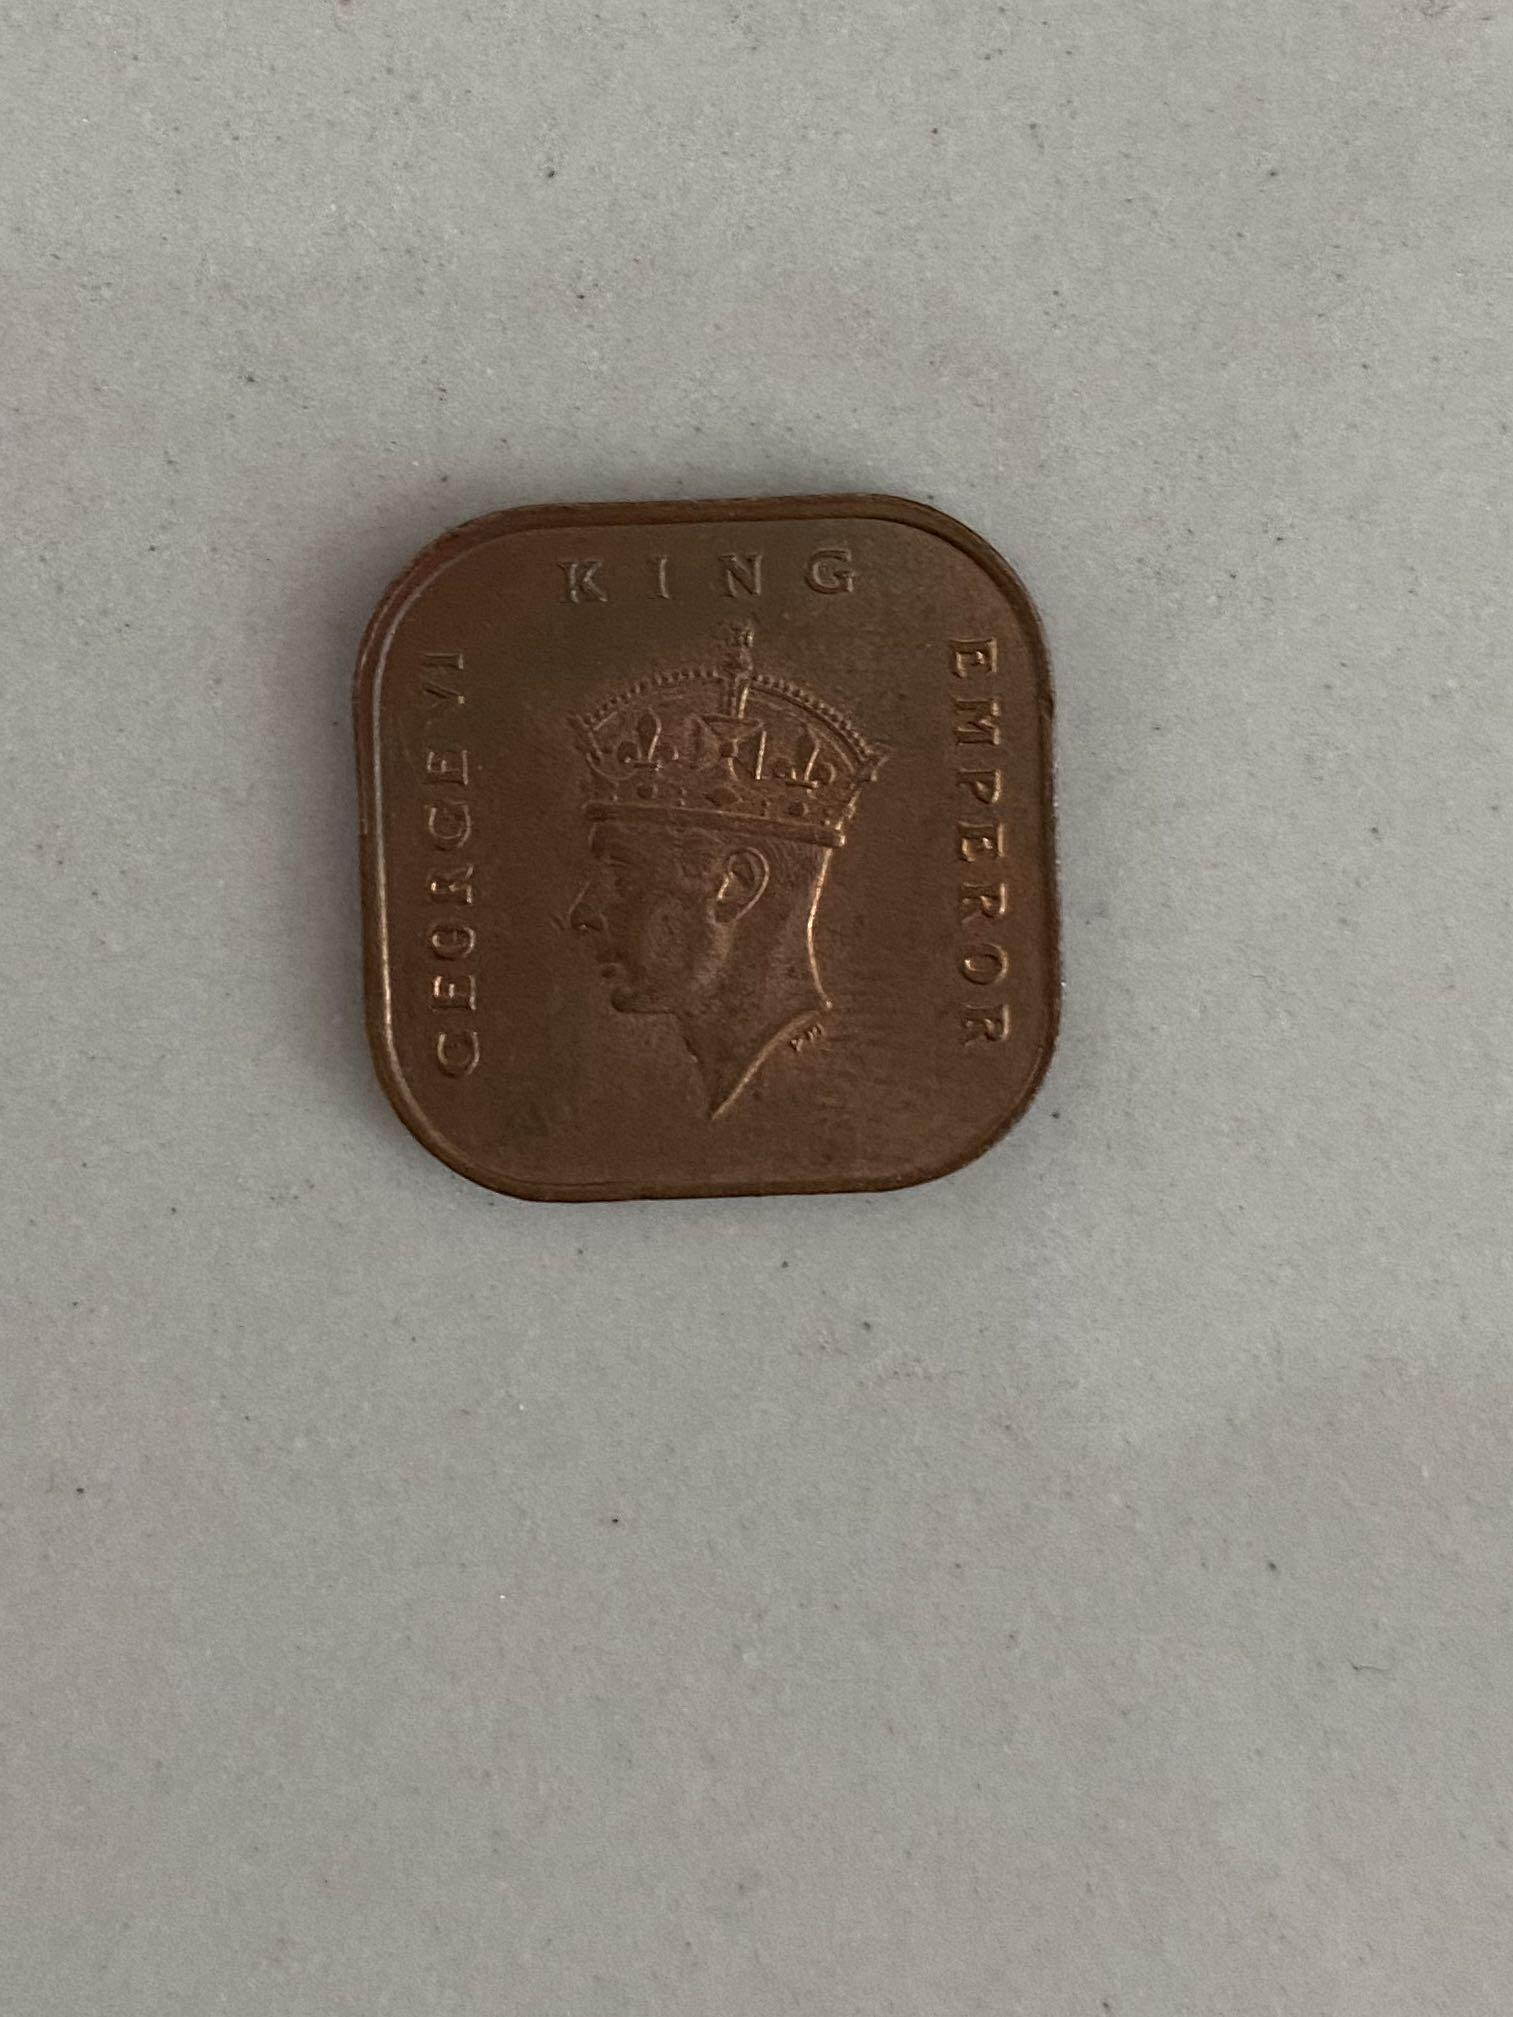 1 cents coin -George VI King Emperor 1945